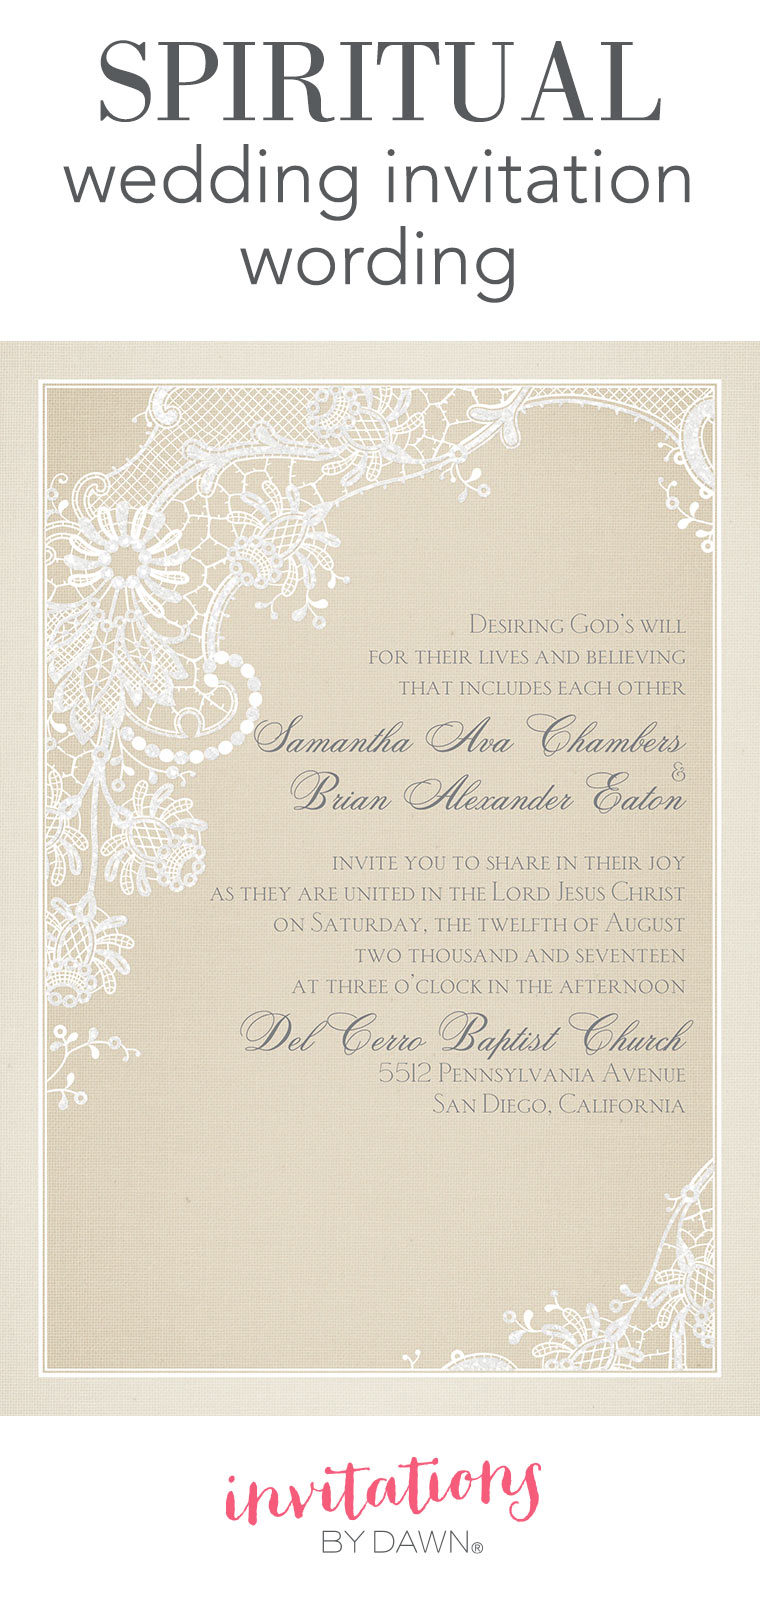 Spiritual wedding invitation wording invitations by dawn stopboris Choice Image